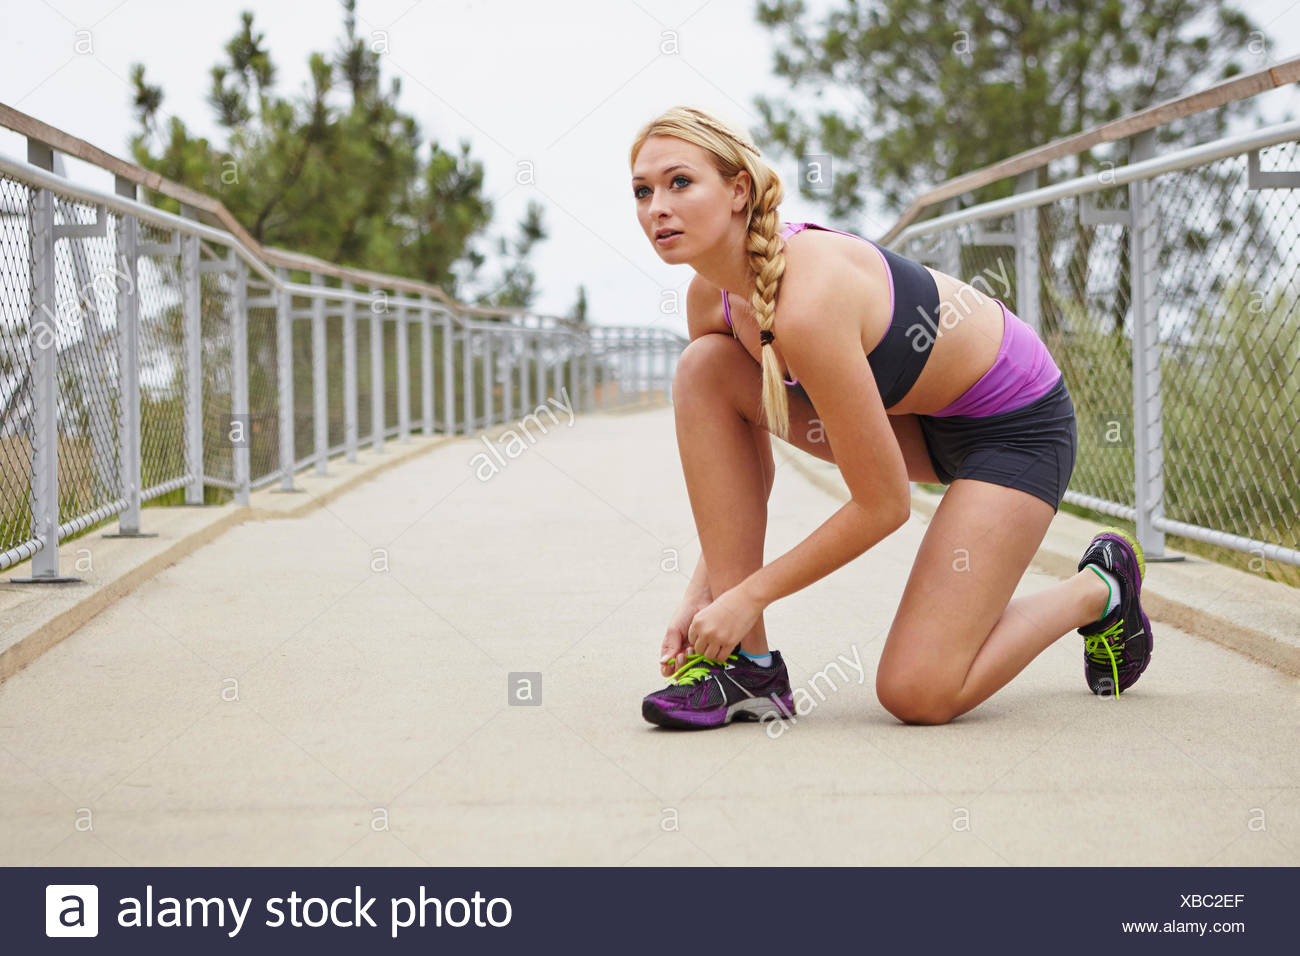 Woman tying shoe lace on bridge - Stock Image